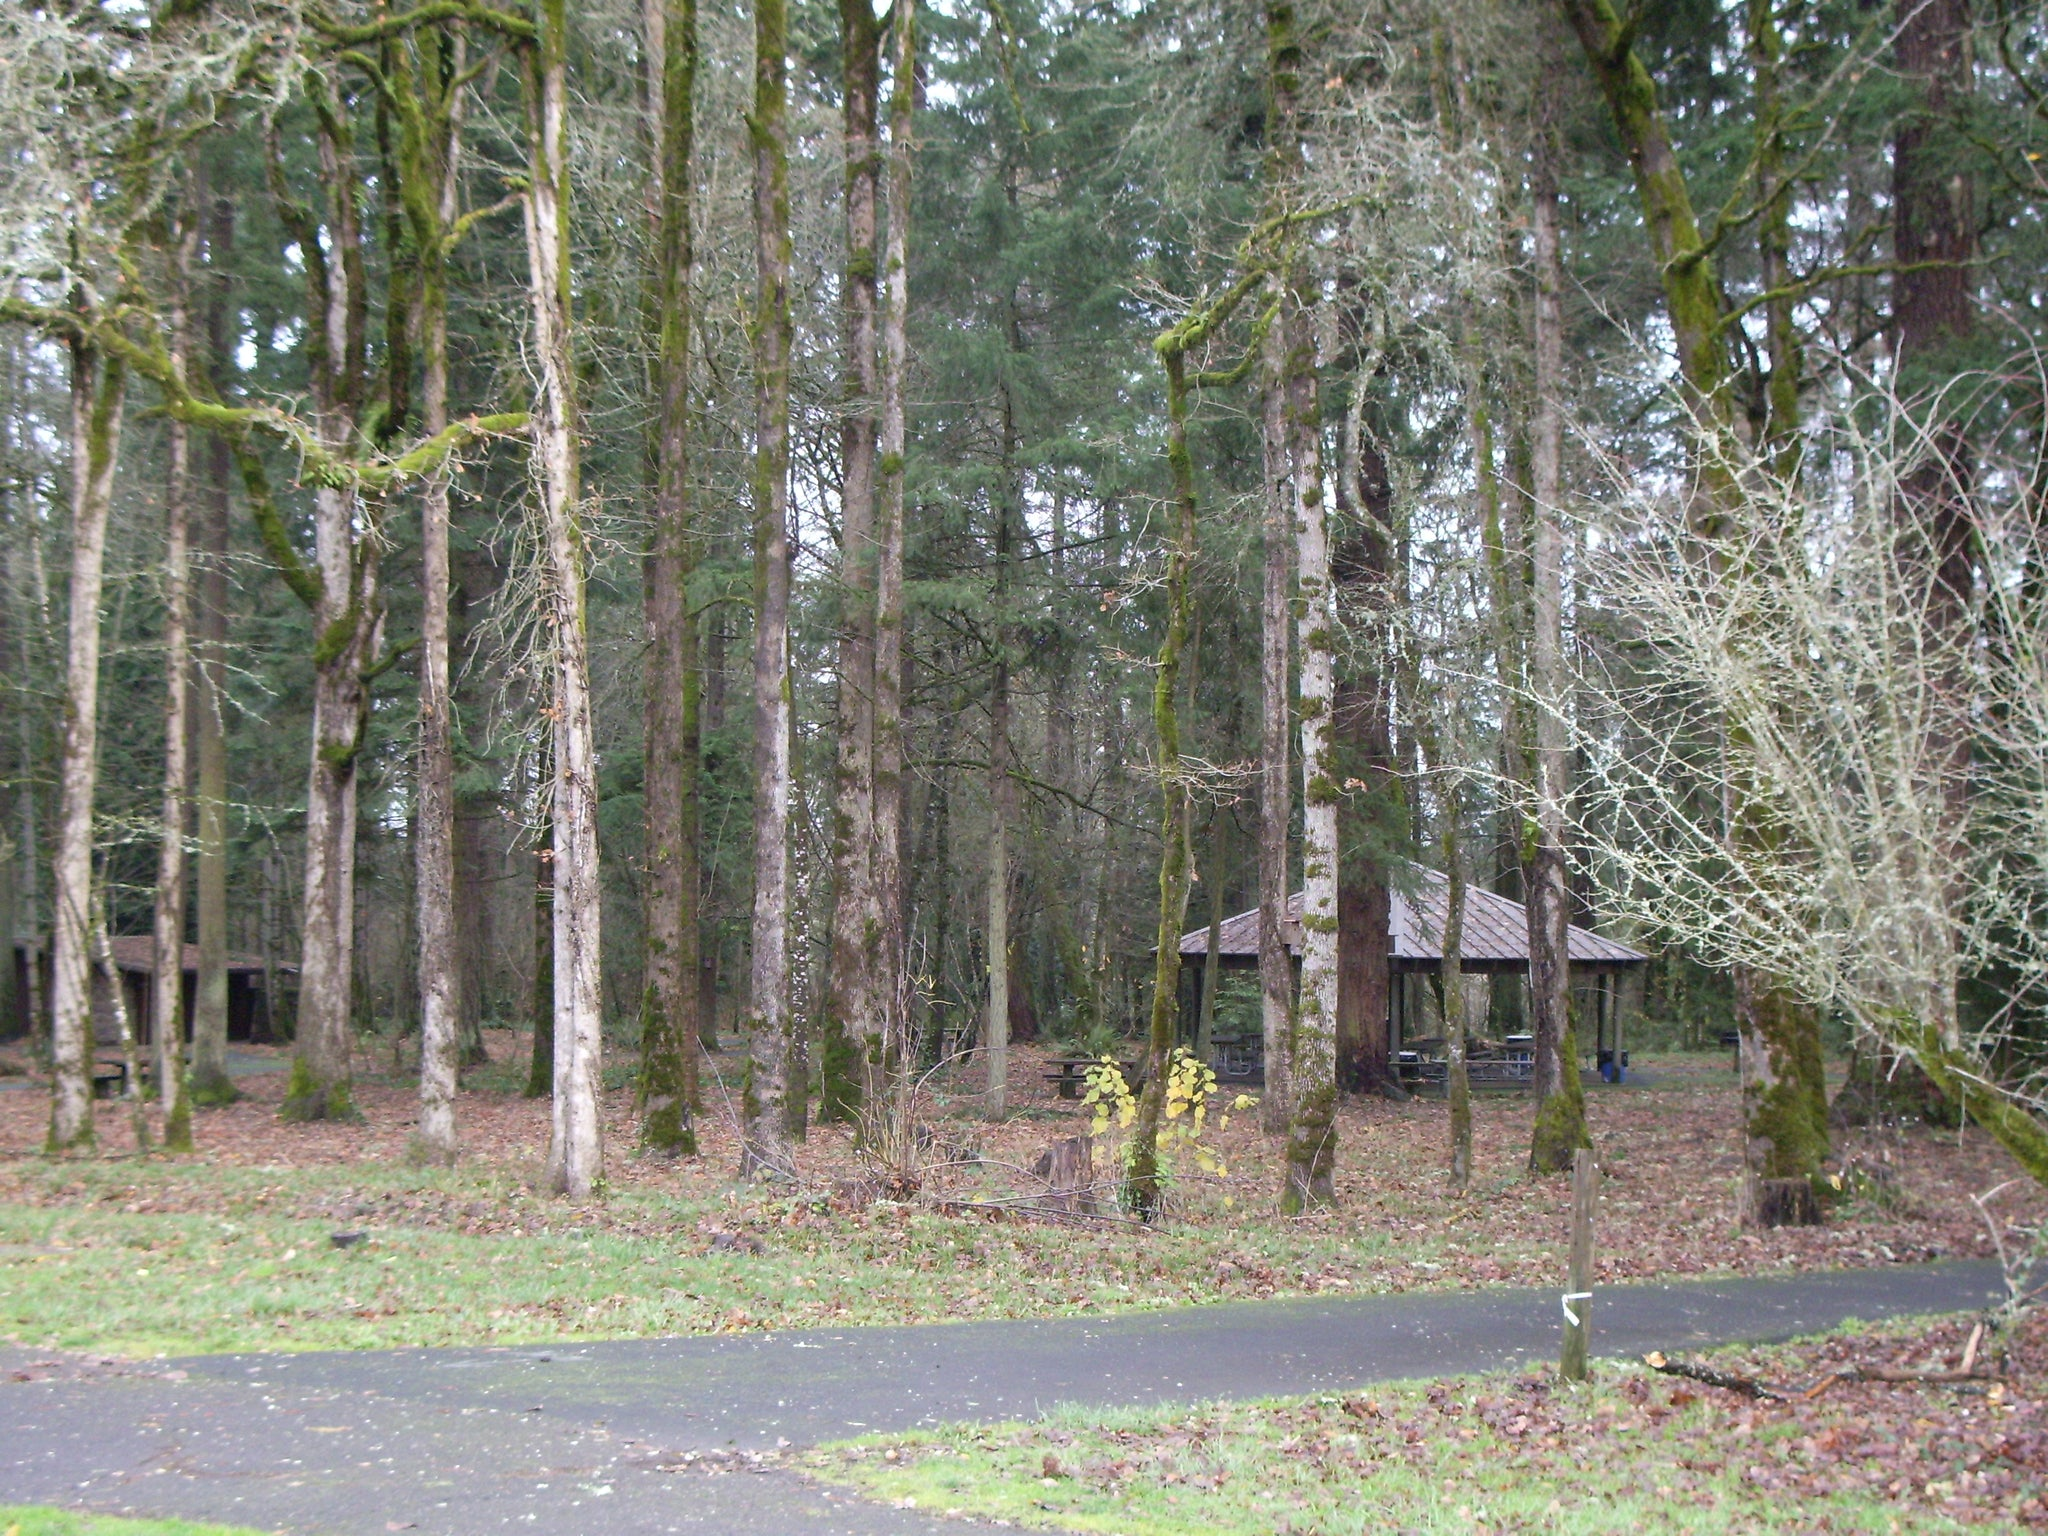 Mary S Young picnic area state park west linn oregon